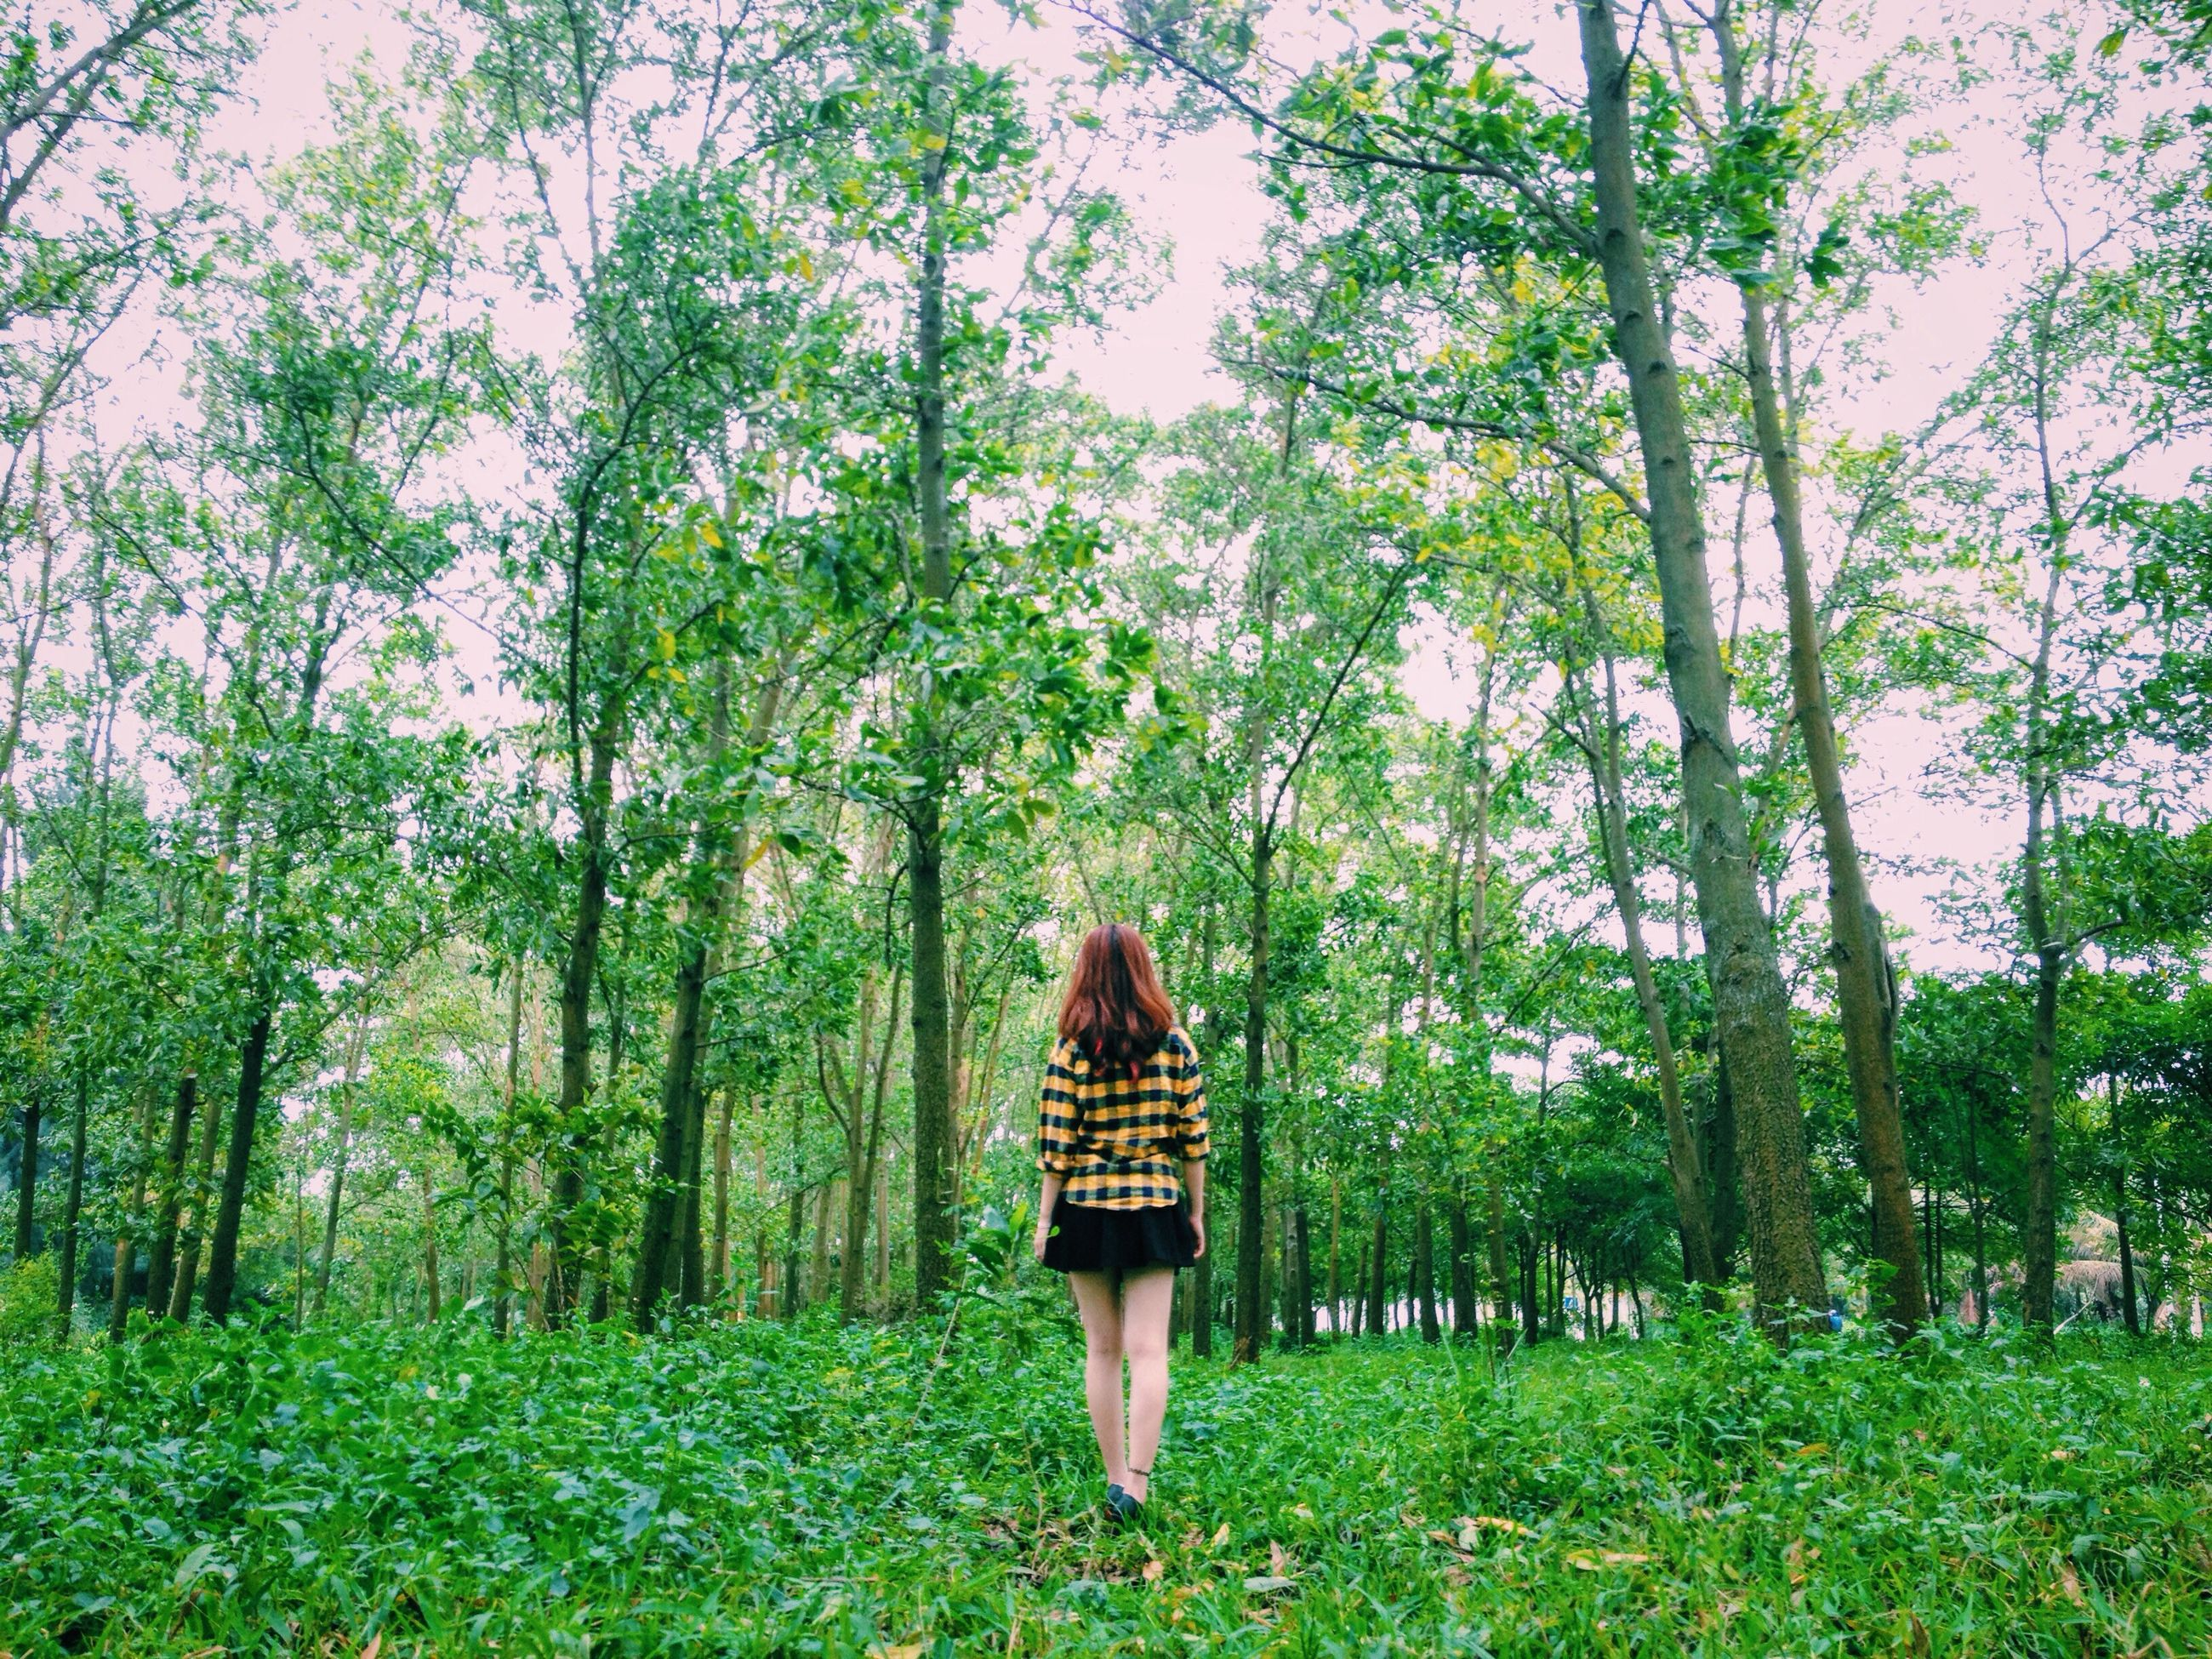 lifestyles, rear view, standing, tree, leisure activity, person, grass, casual clothing, full length, growth, green color, walking, plant, nature, field, young women, beauty in nature, tranquility